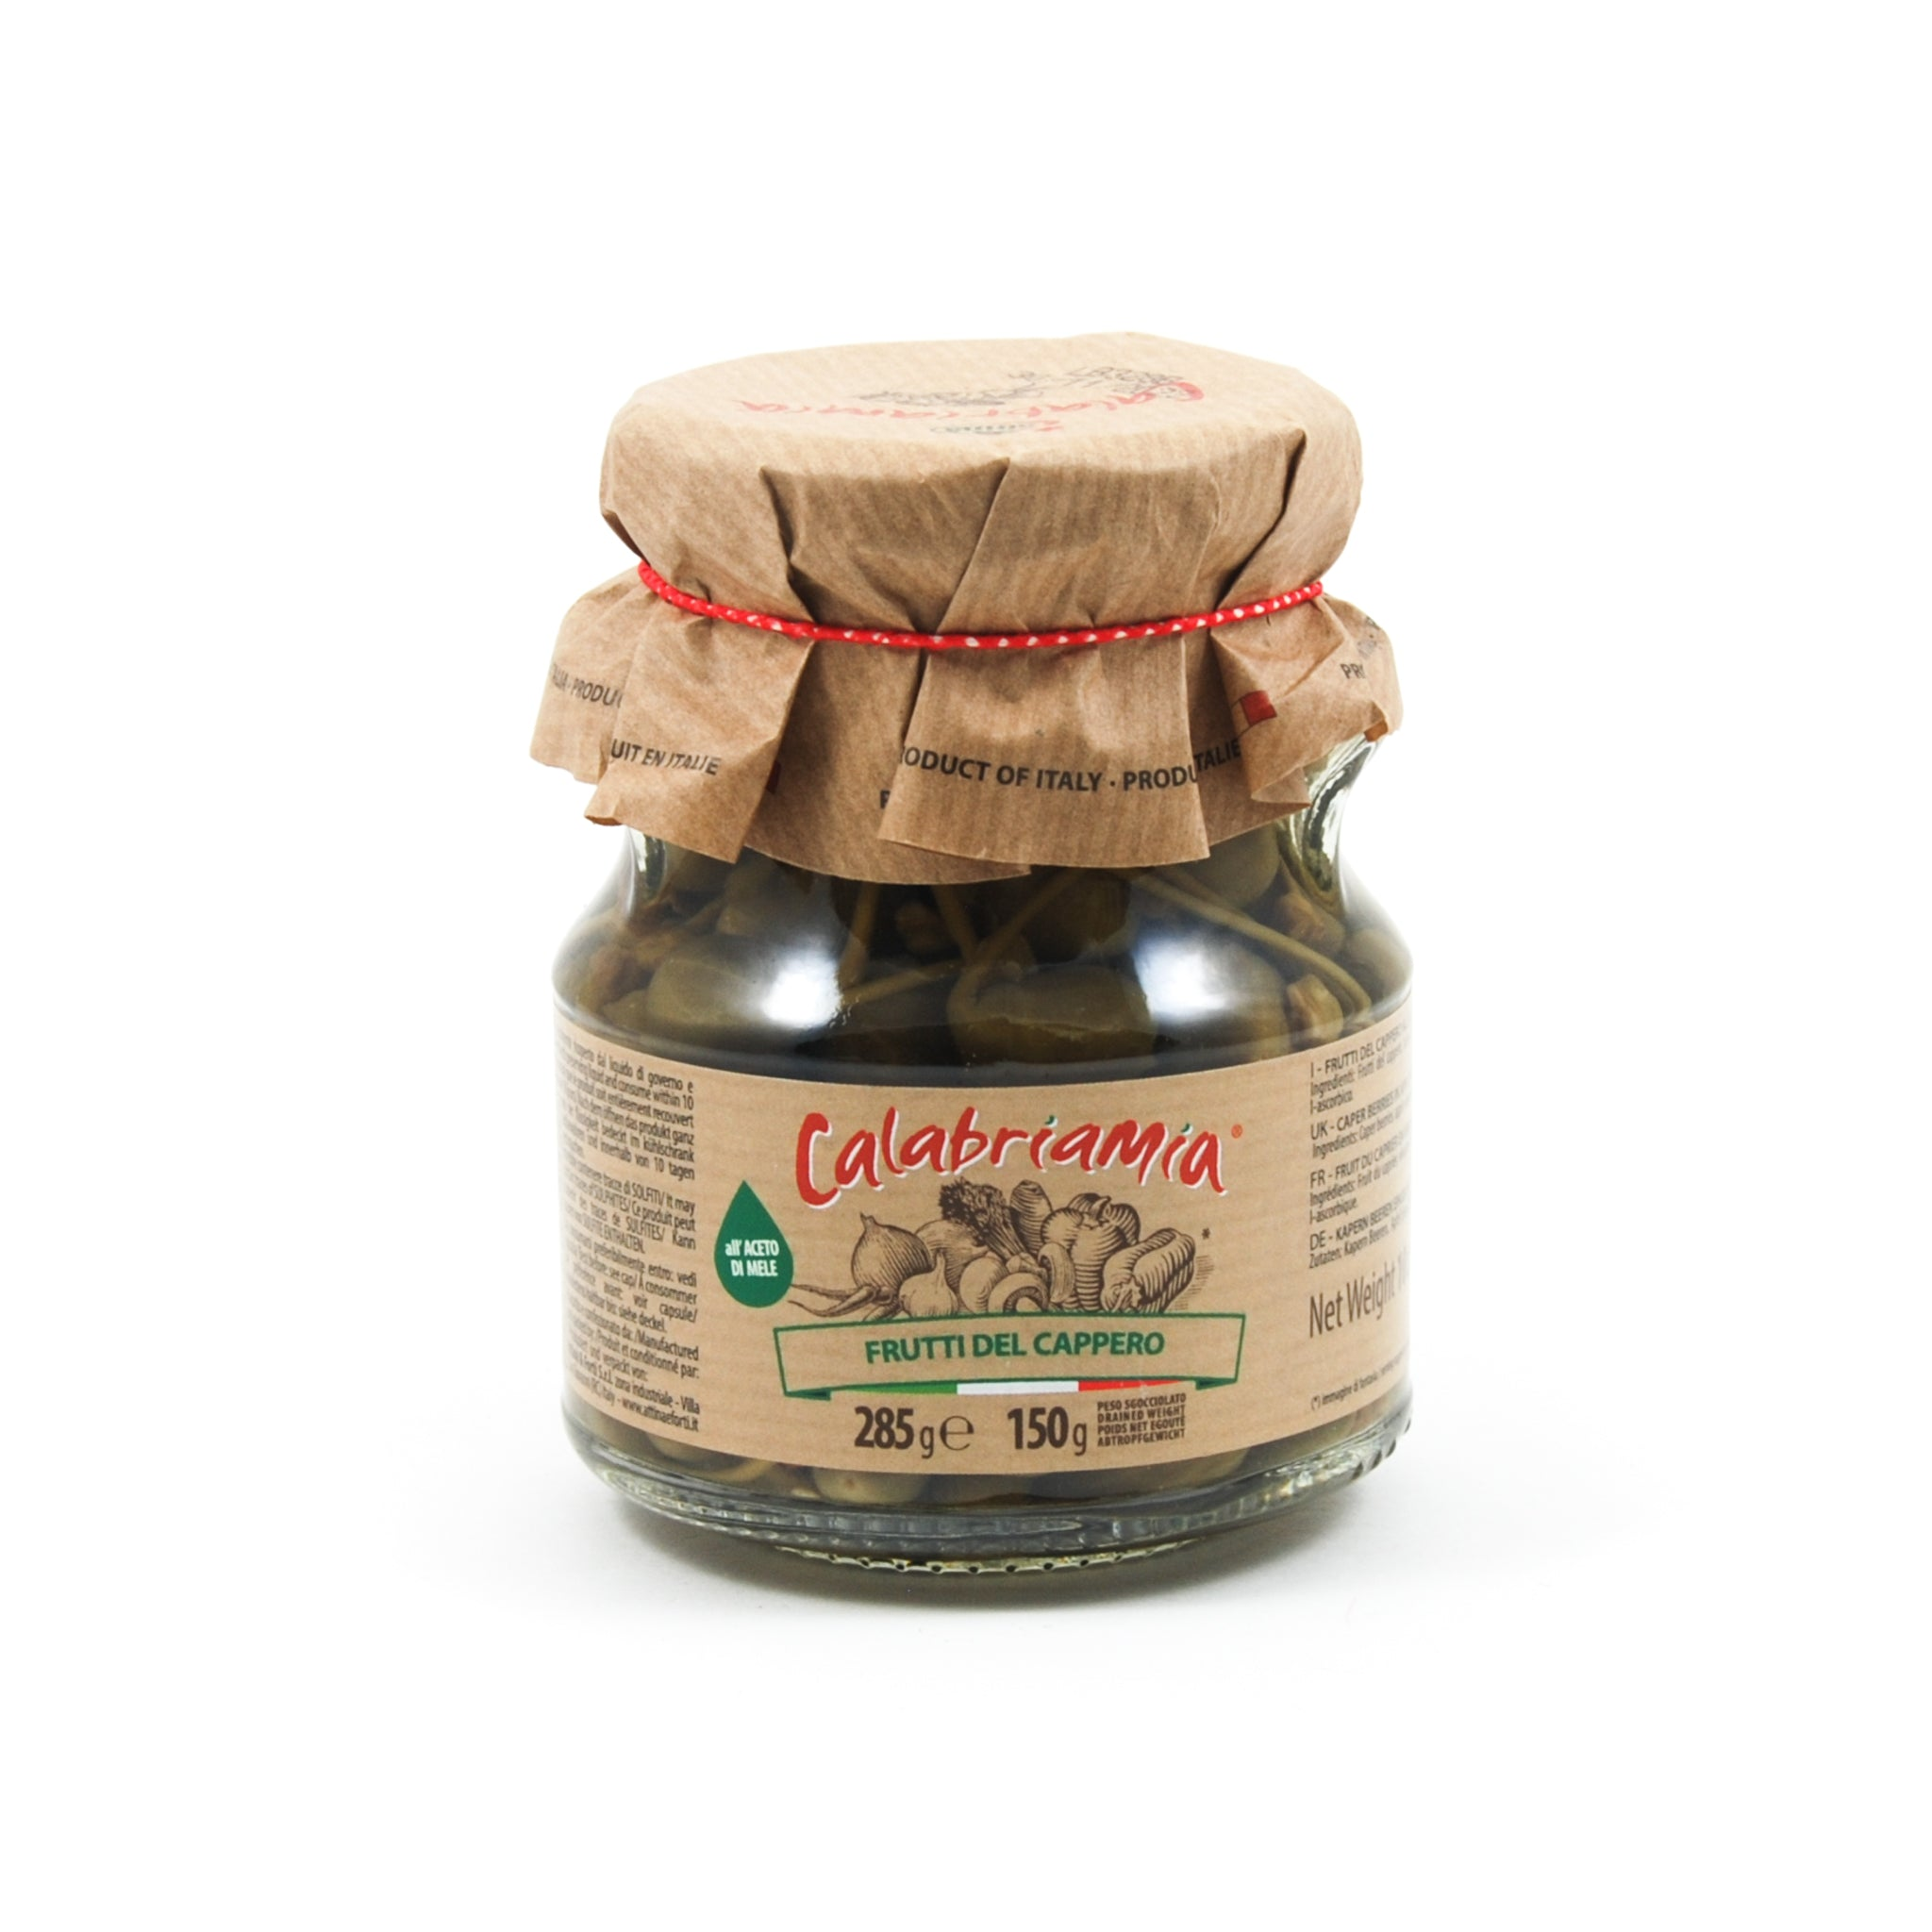 Calabriamia Caper Berries in Vinegar 314ml Ingredients Pickled & Preserved Vegetables Italian Food